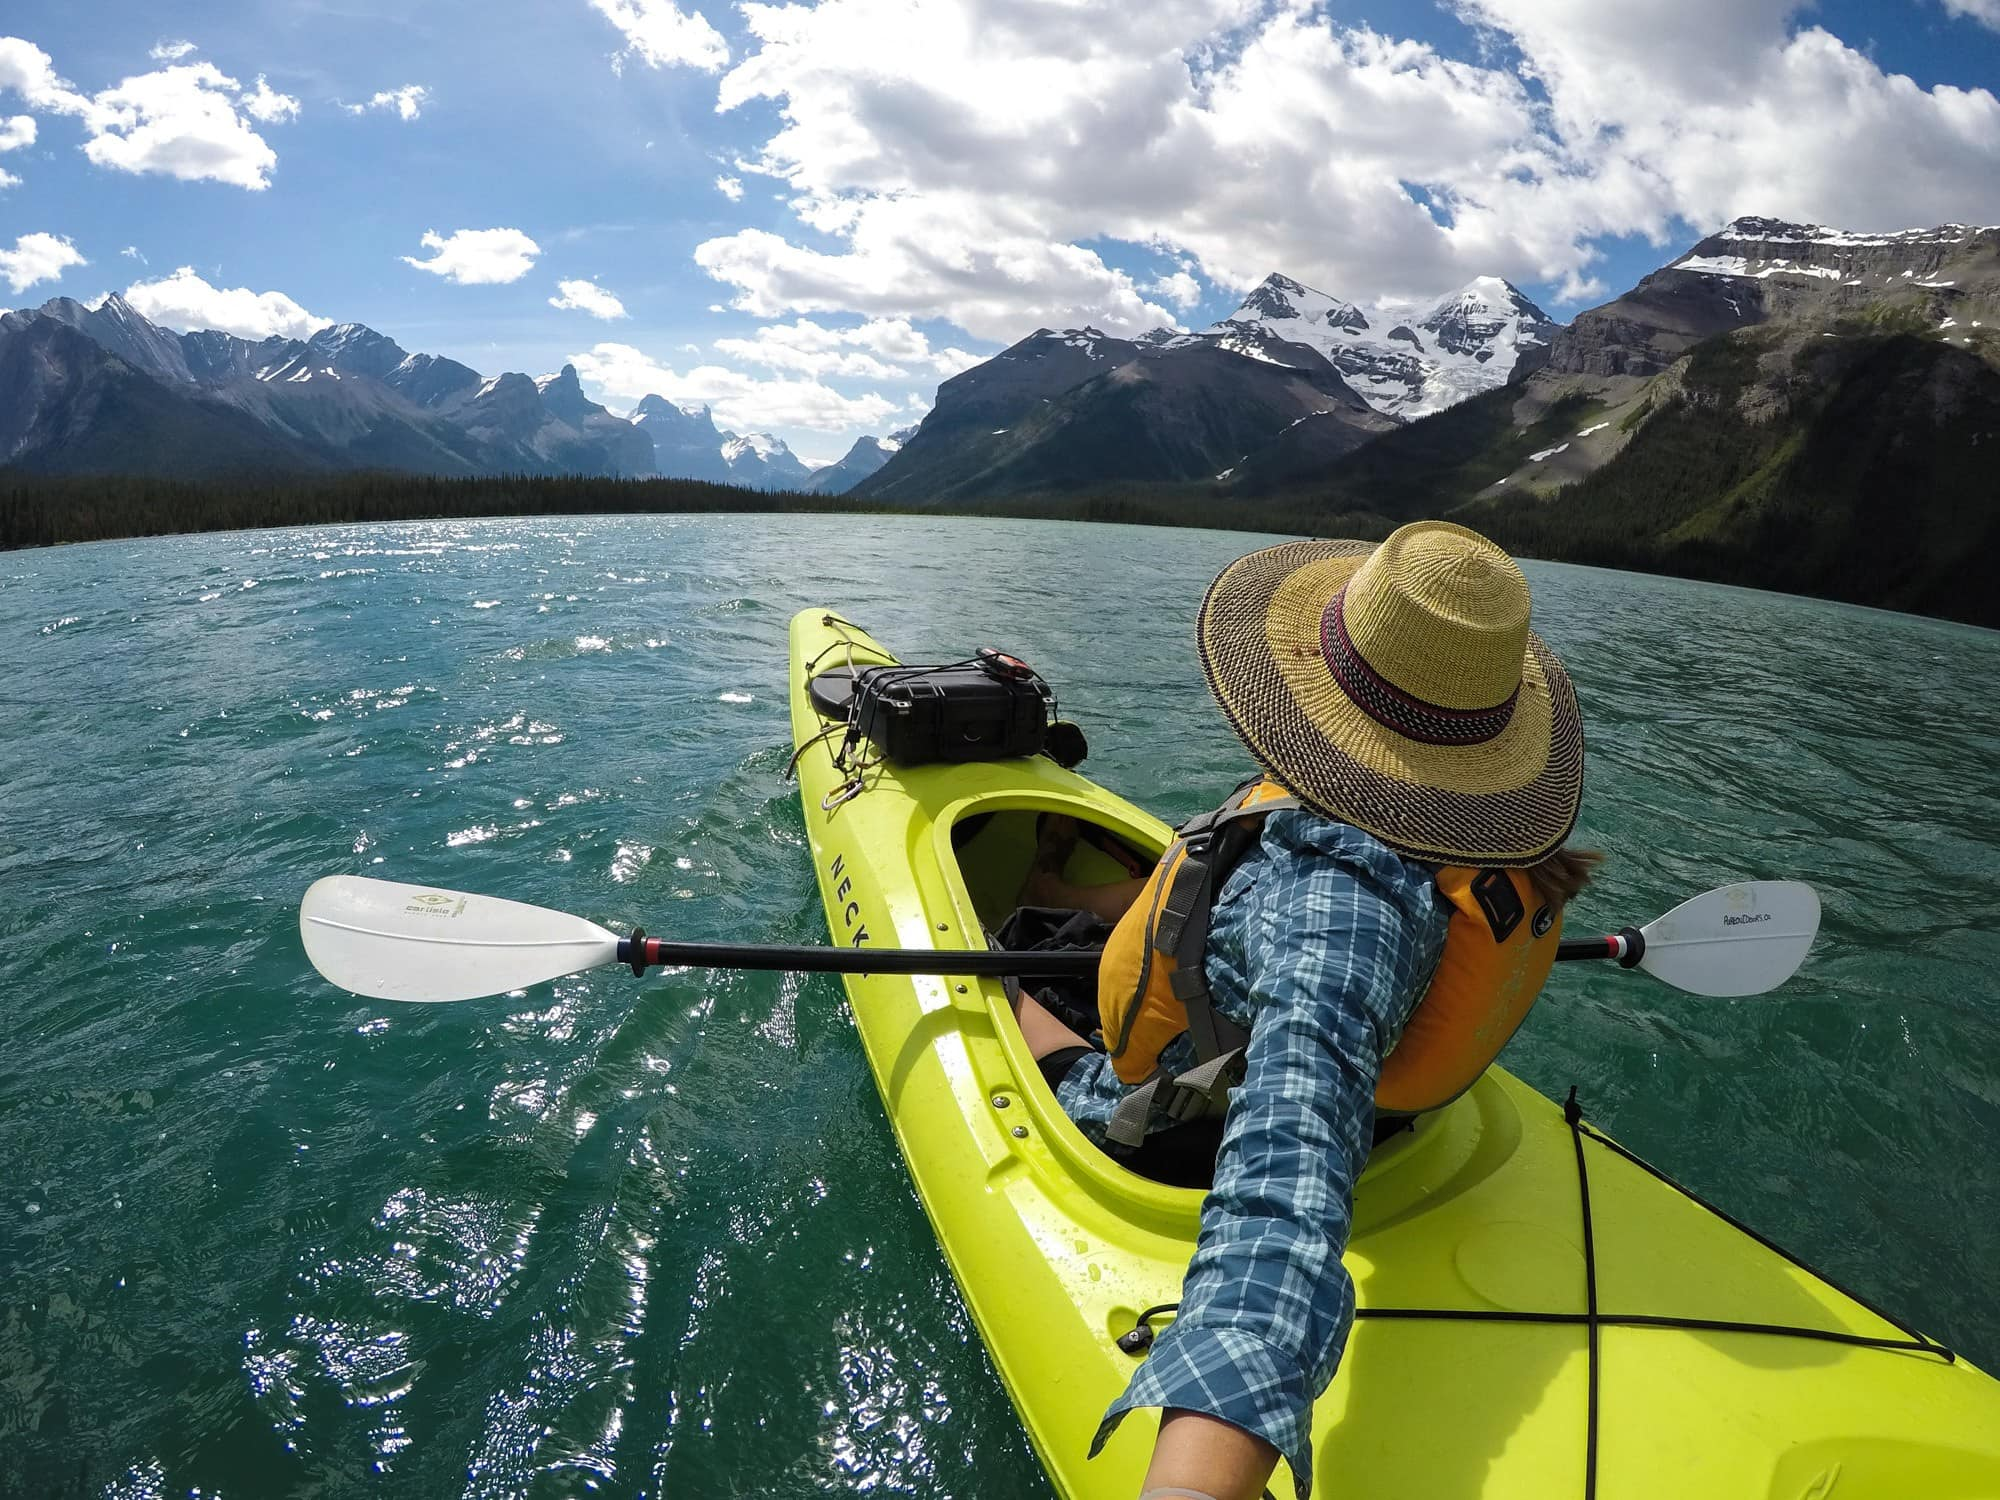 Sit-on top vs Sit-in Kayaks // Build confidence with these kayaking tips for beginners. Learn about different types of kayaks, what to wear, how to paddle & trip planning considerations.